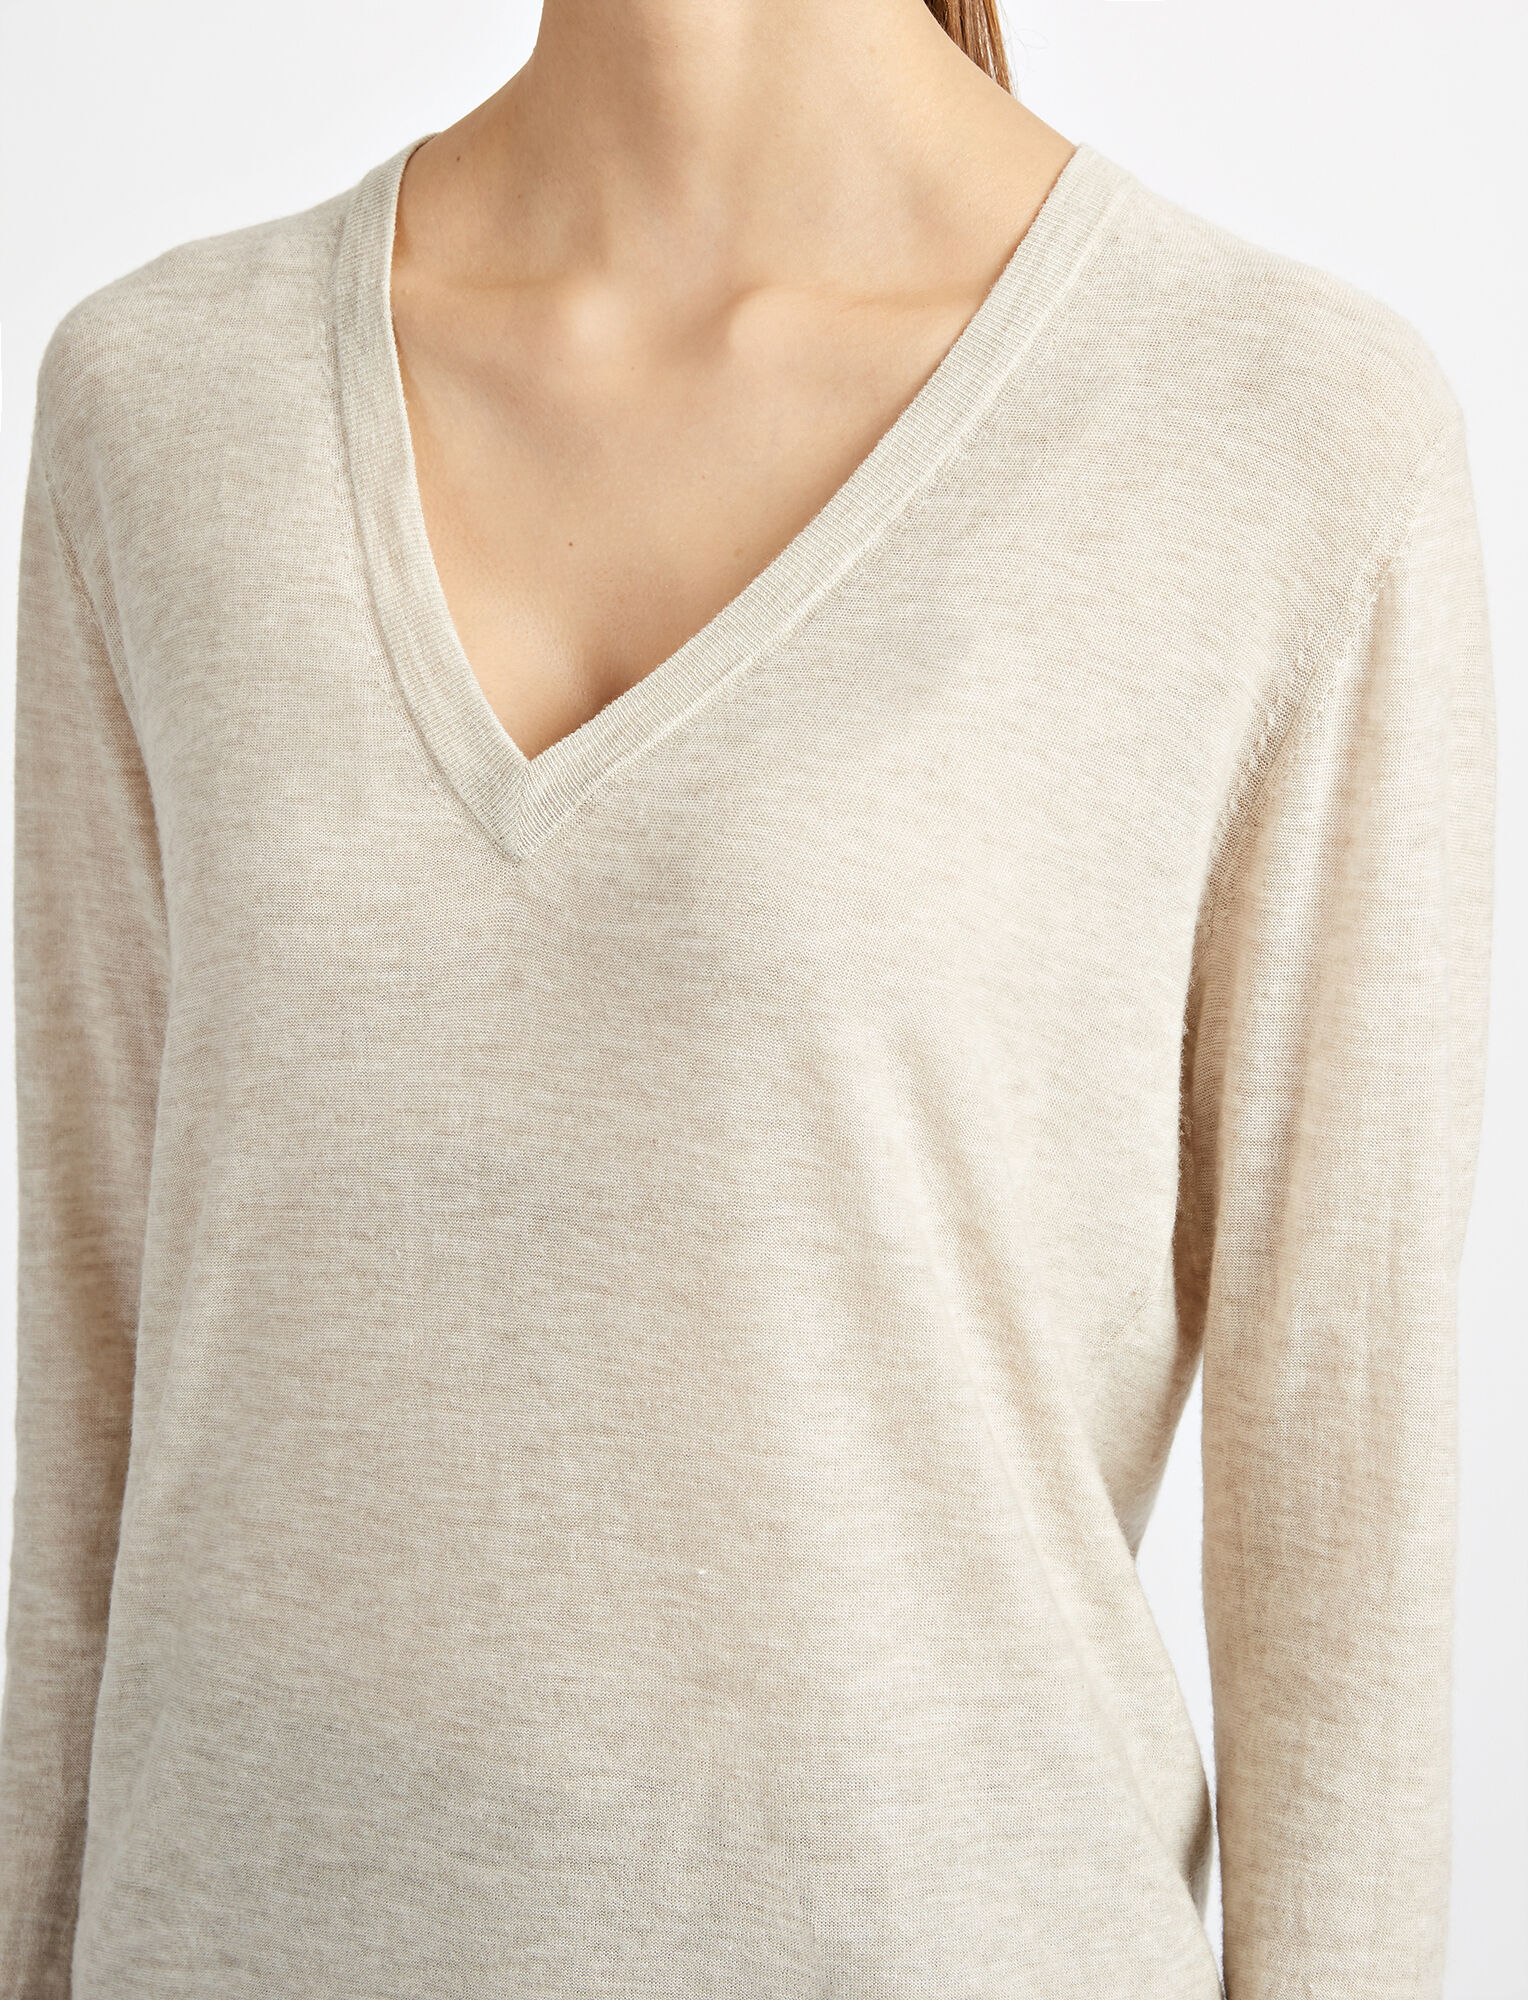 Joseph, Cashair V Neck Sweater, in HEMP